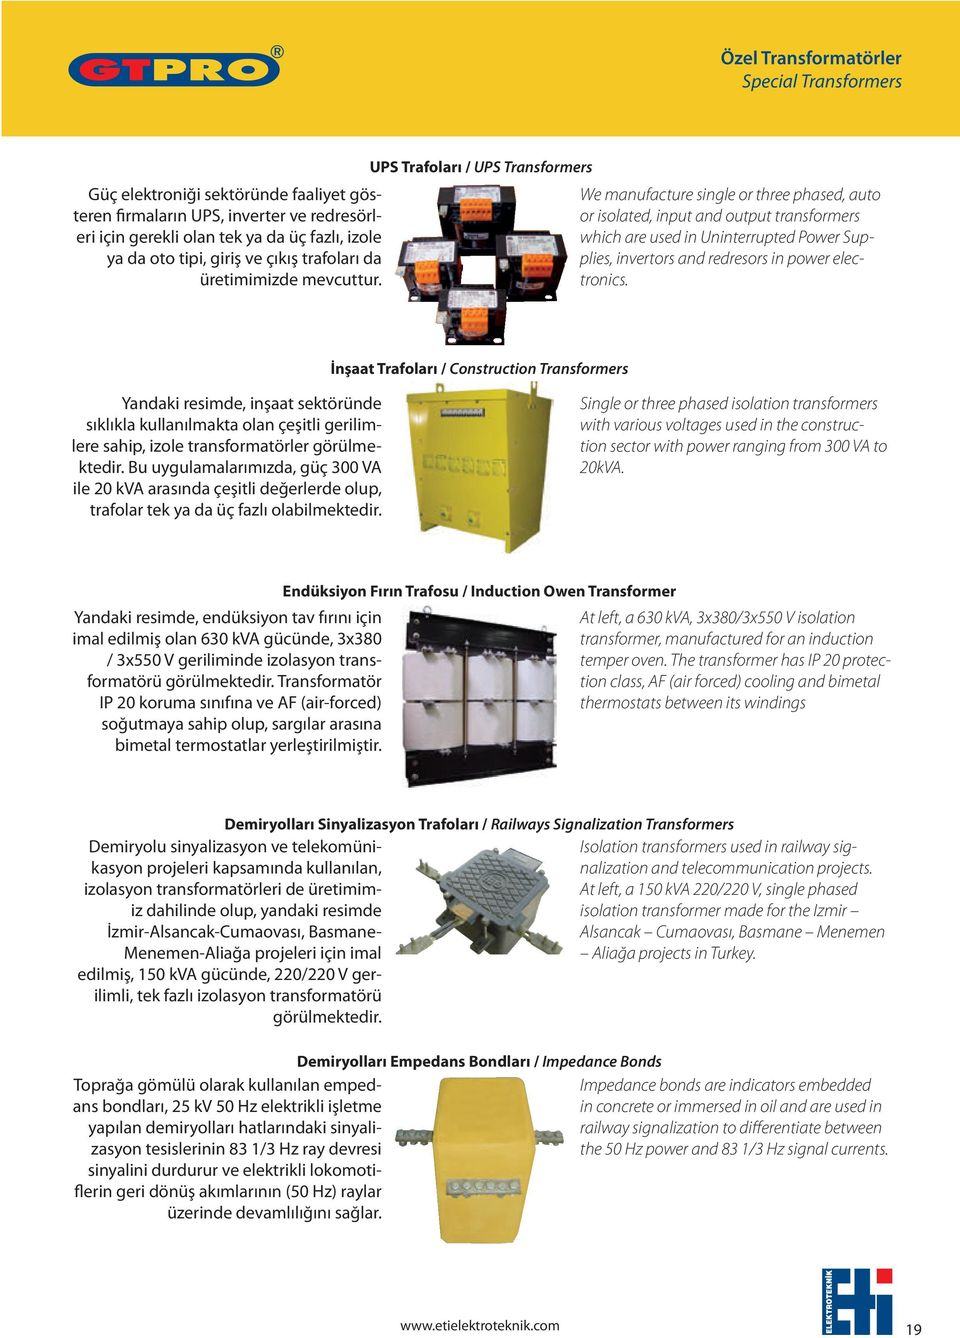 UPS Trafoları / UPS Transformers We manufacture single or three phased, auto or isolated, input and output transformers which are used in Uninterrupted Power Supplies, invertors and redresors in